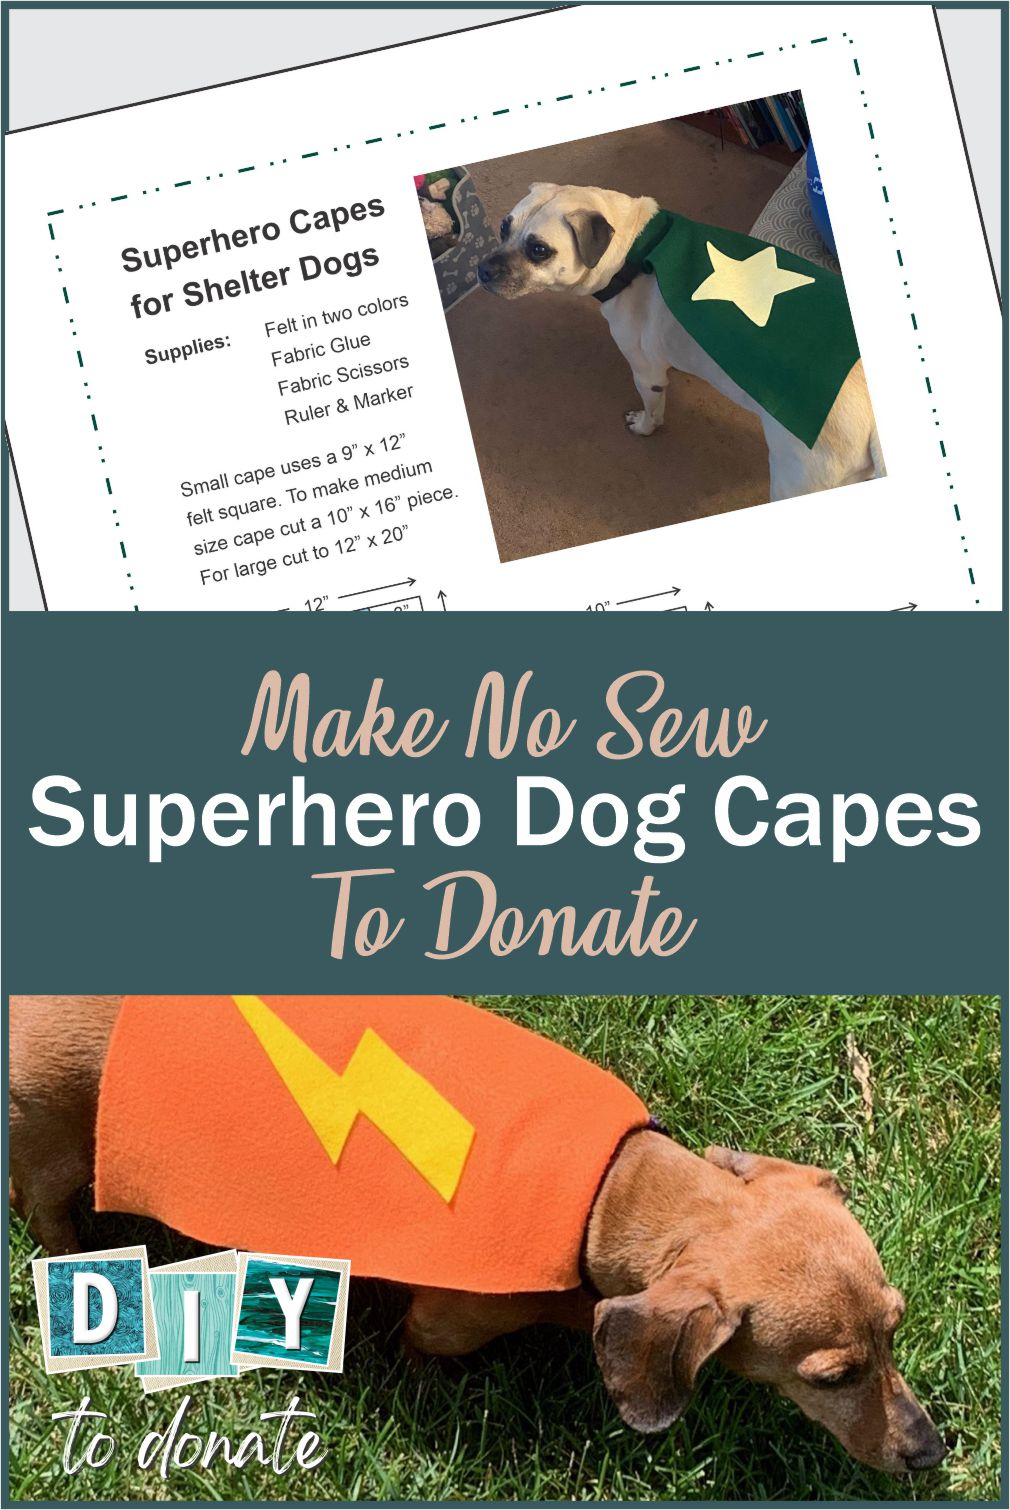 No-Sew Capes For Dogs When you make and donate no-sew capes for dogs, you're giving those dogs in shelters a little extra chance of being adopted. #diytodonate #diy #donate #dogcapes #crafts #craftstodonate #petadoptions #animalshelters